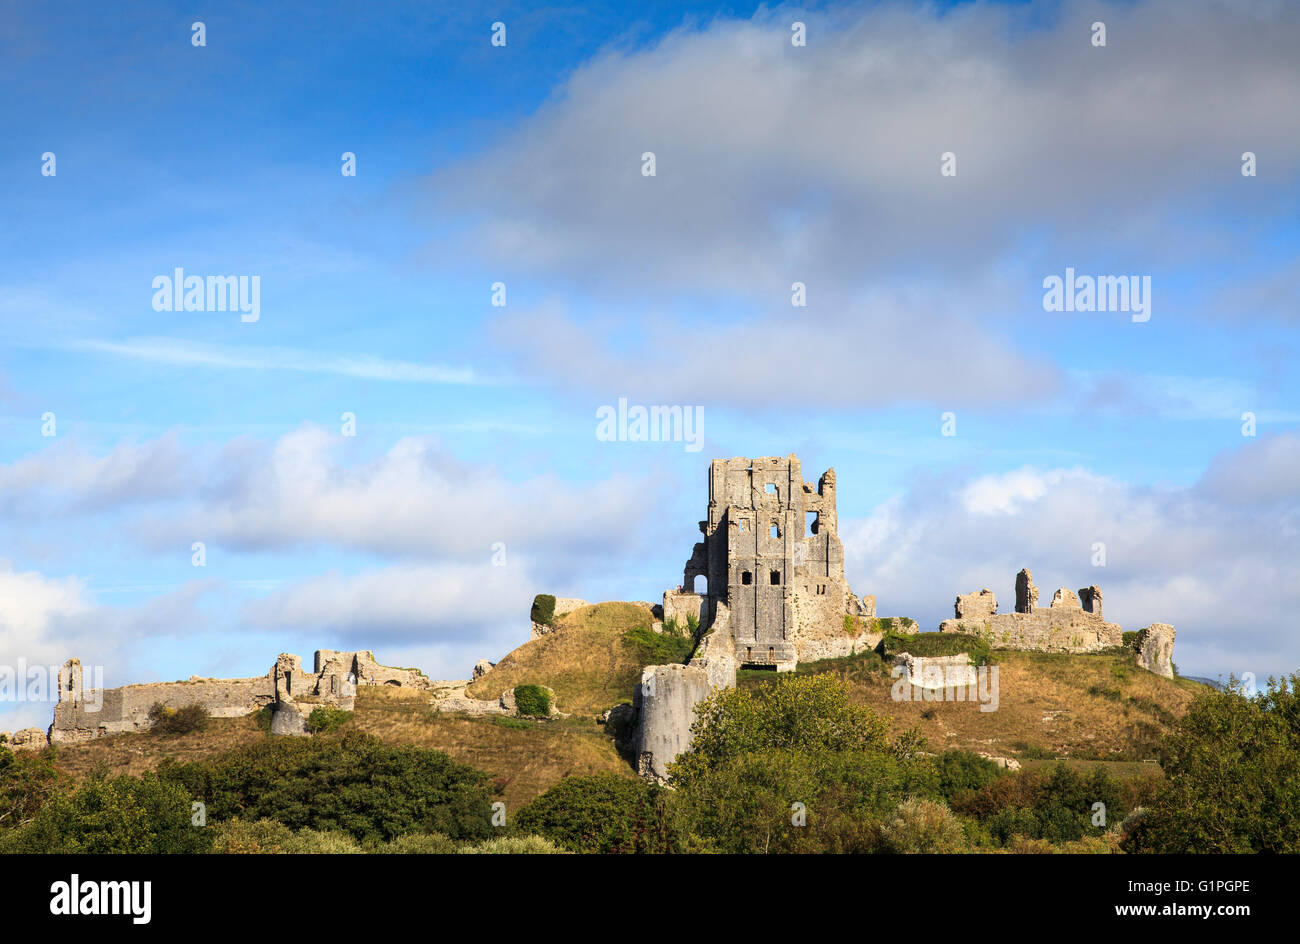 Corfe Castle, Isle of Purbeck, Dorset, England - Stock Image